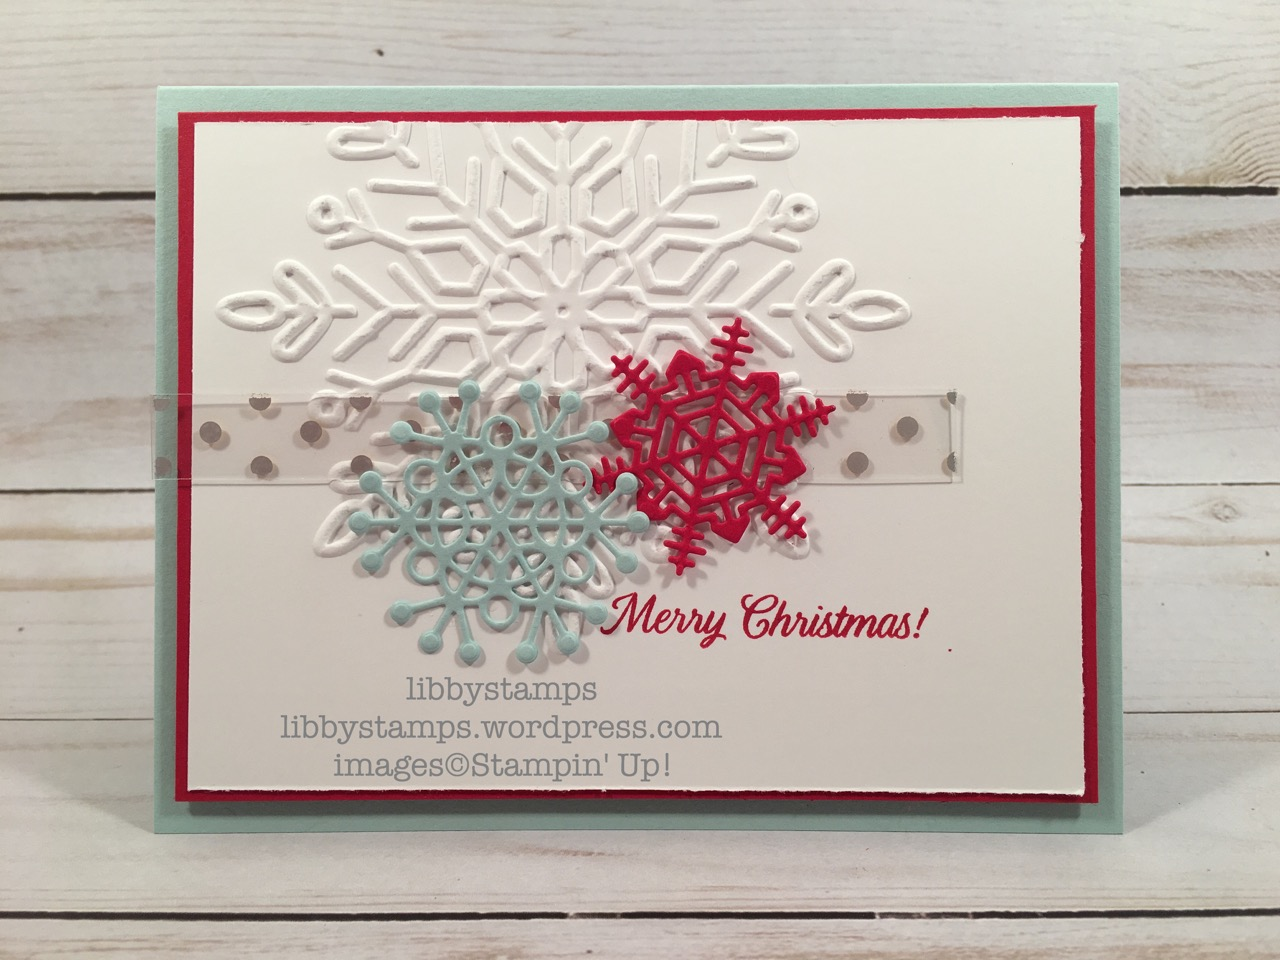 libbystamps, stampin up, Merry Patterns, Seasonal Layers Thinlits, Fabulous Foil Designer Acetate, CCMC